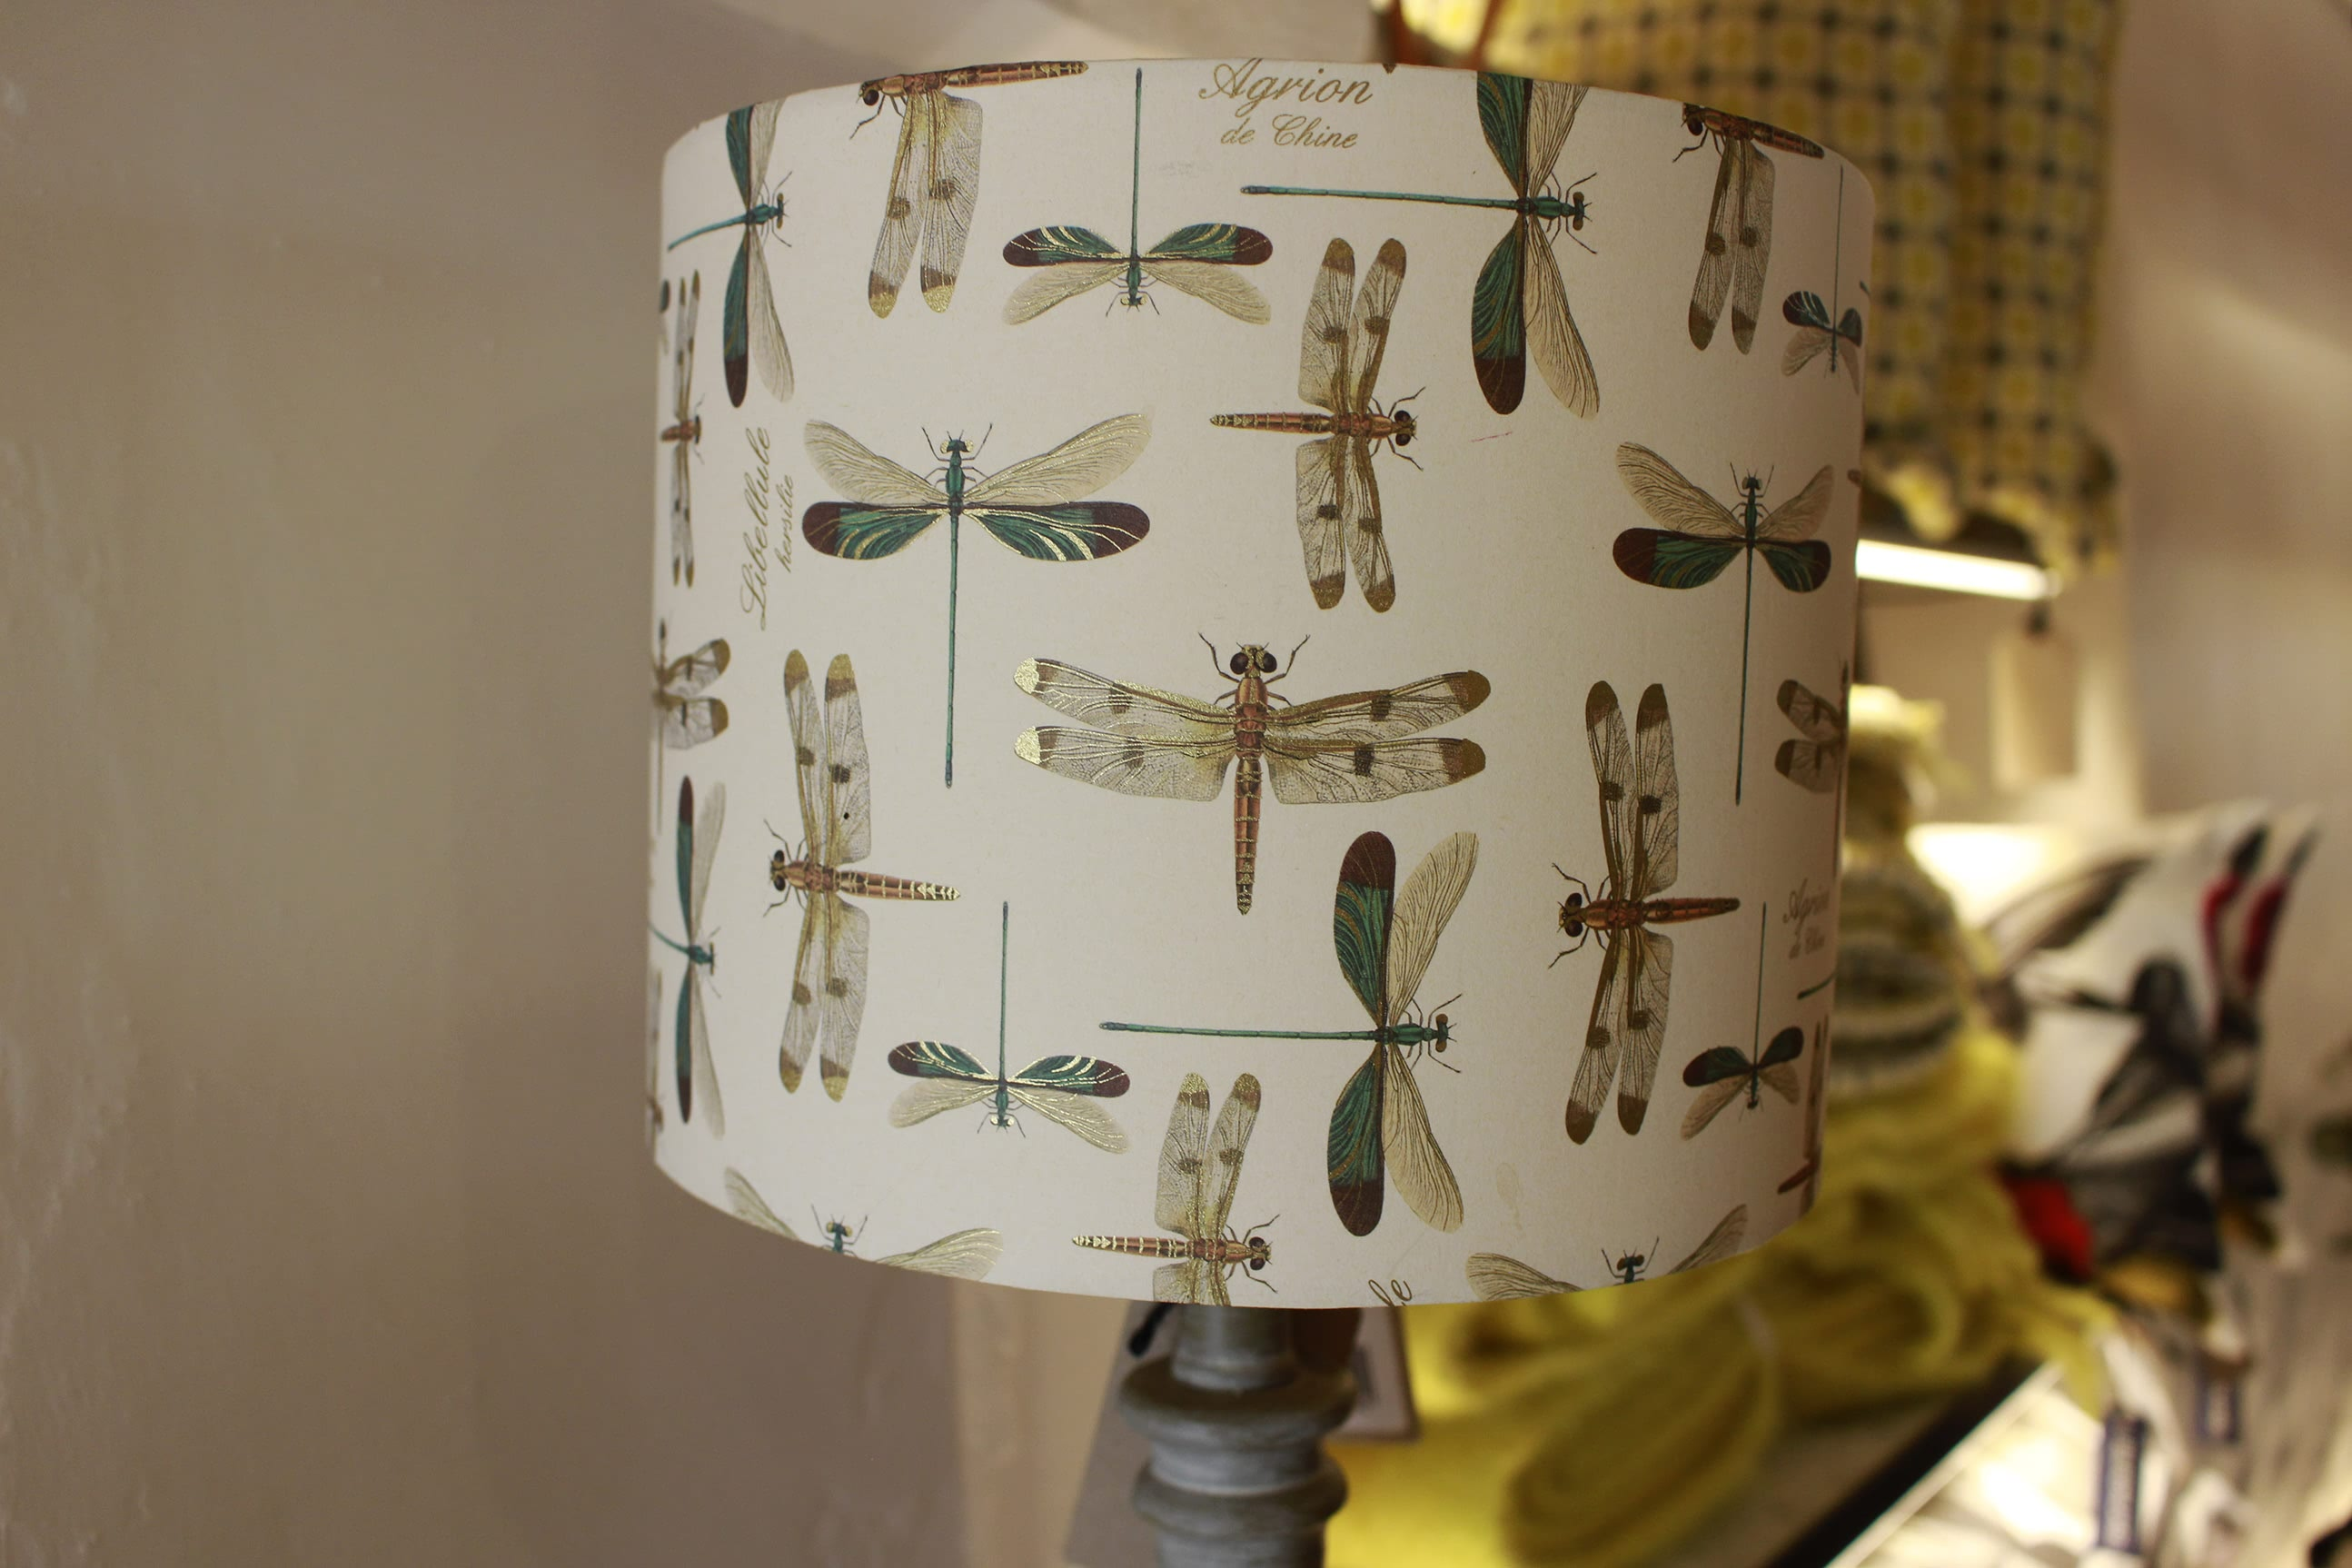 dragon fly, lamp shade, lamp stand